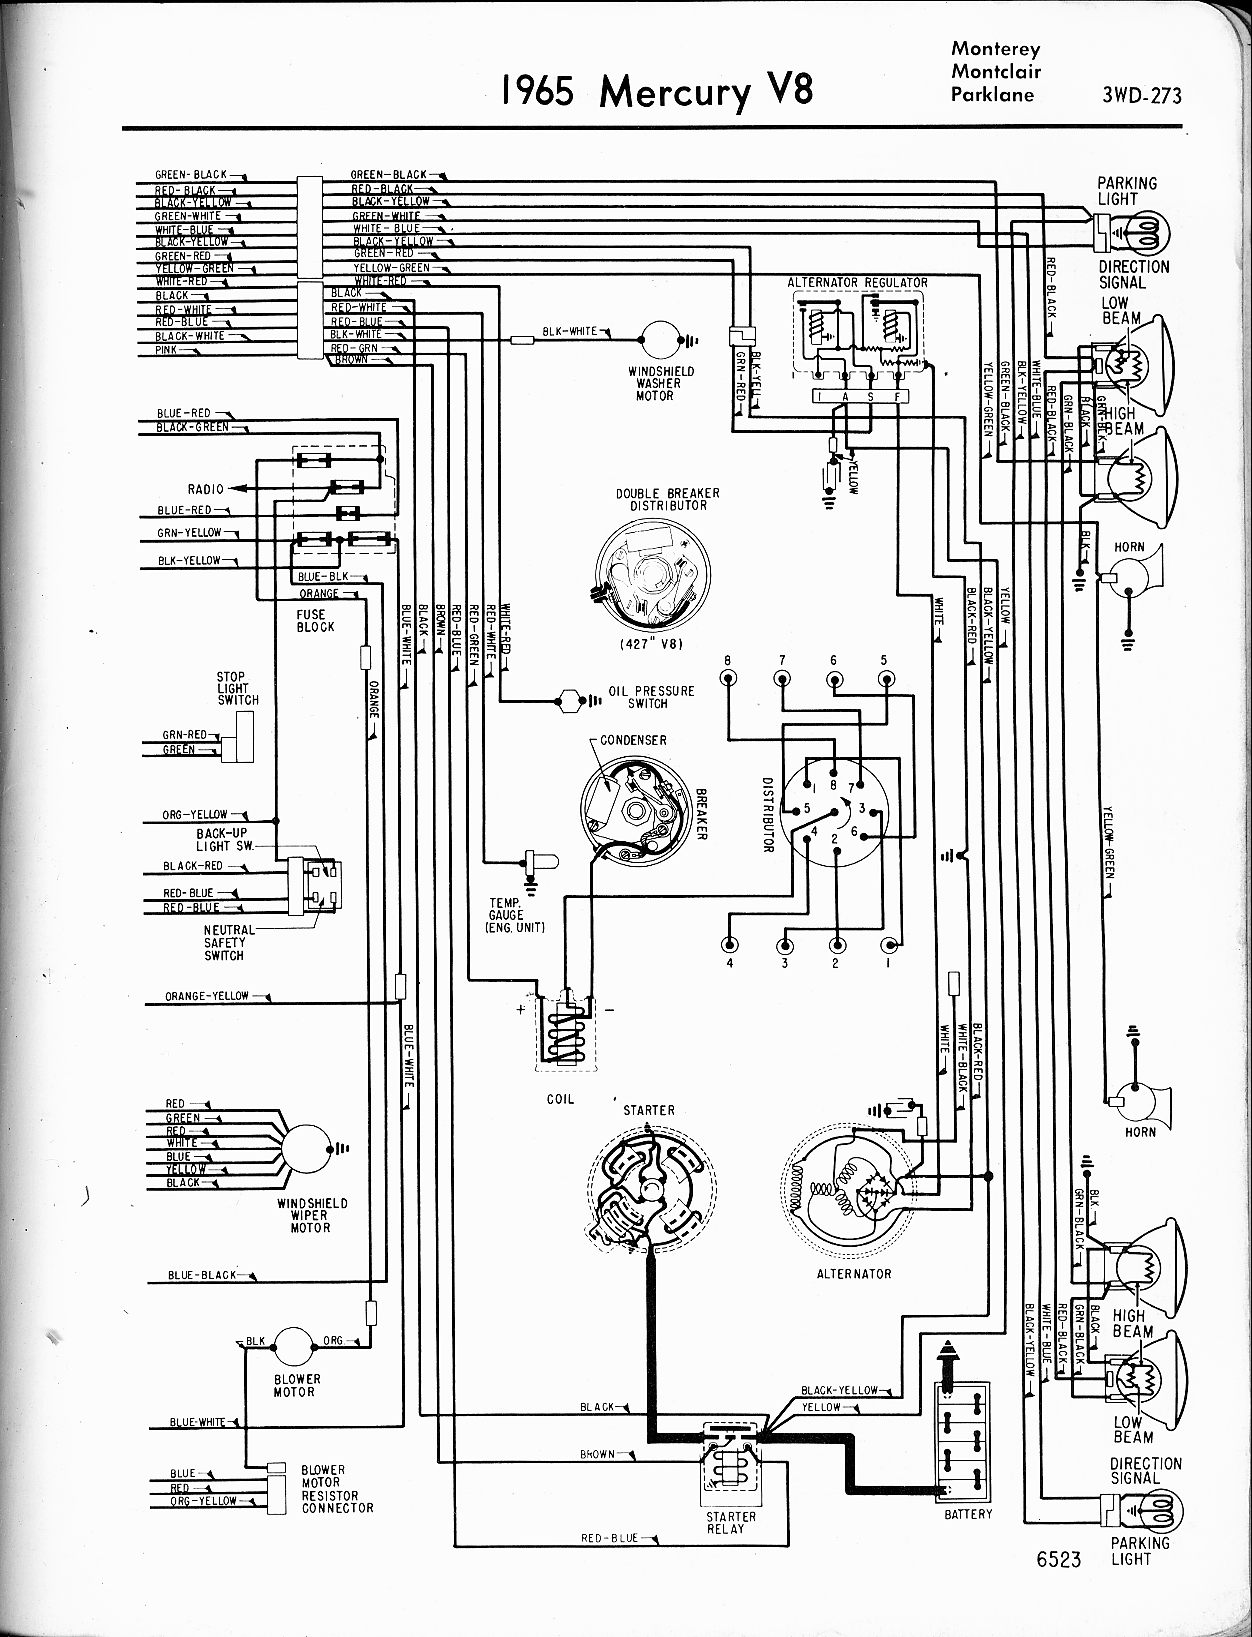 1969 Mgb Wiring Diagram from www.oldcarmanualproject.com